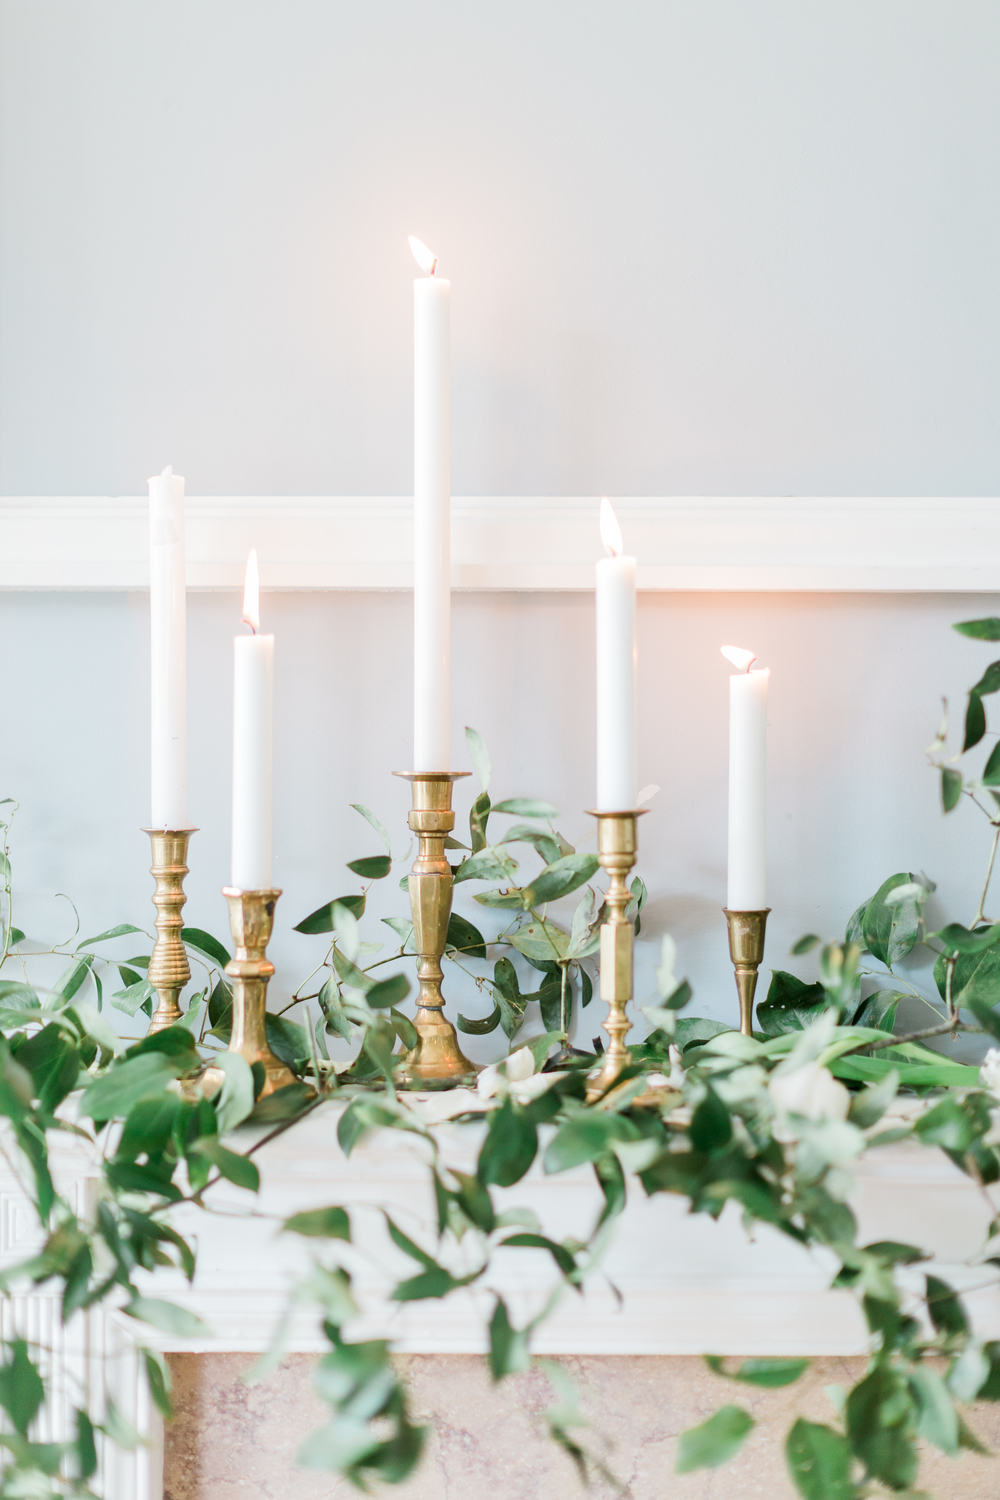 Candles-and-Greenery-on-Mantlepiece